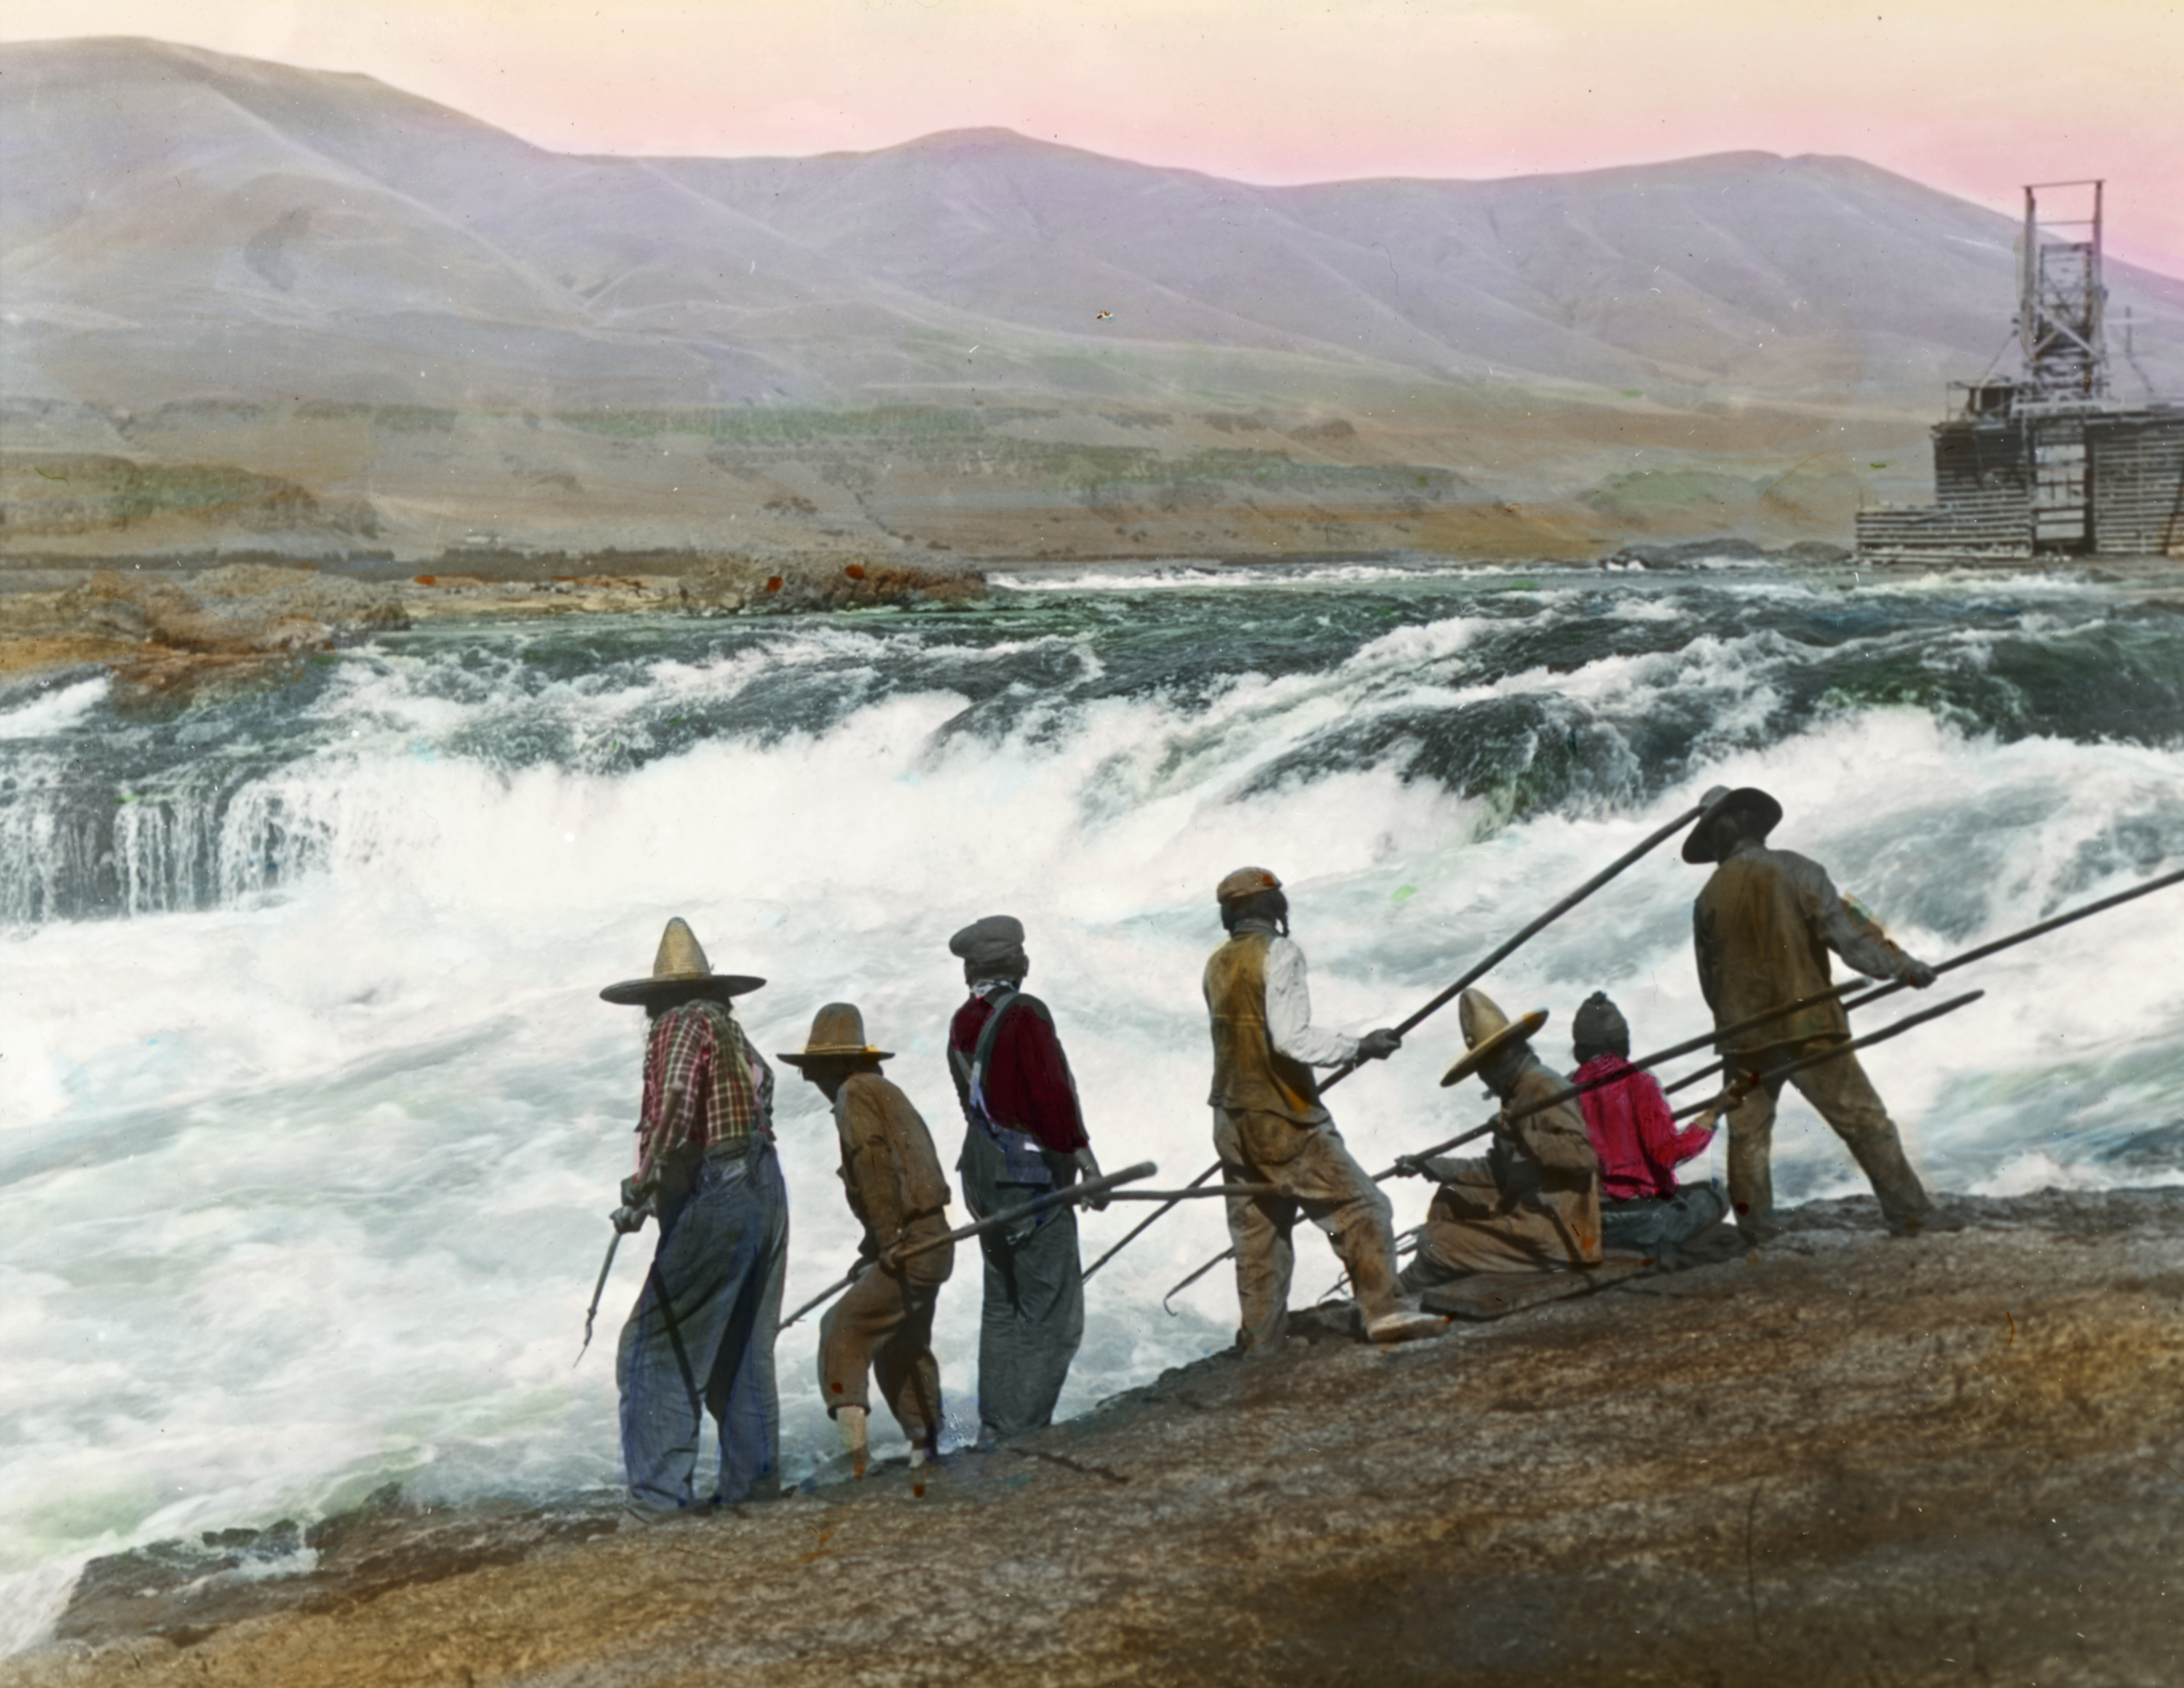 INDIANS FISHING FOR SALMON IN OREGON SPEARING SALMON HARPOON INDIAN HISTORY